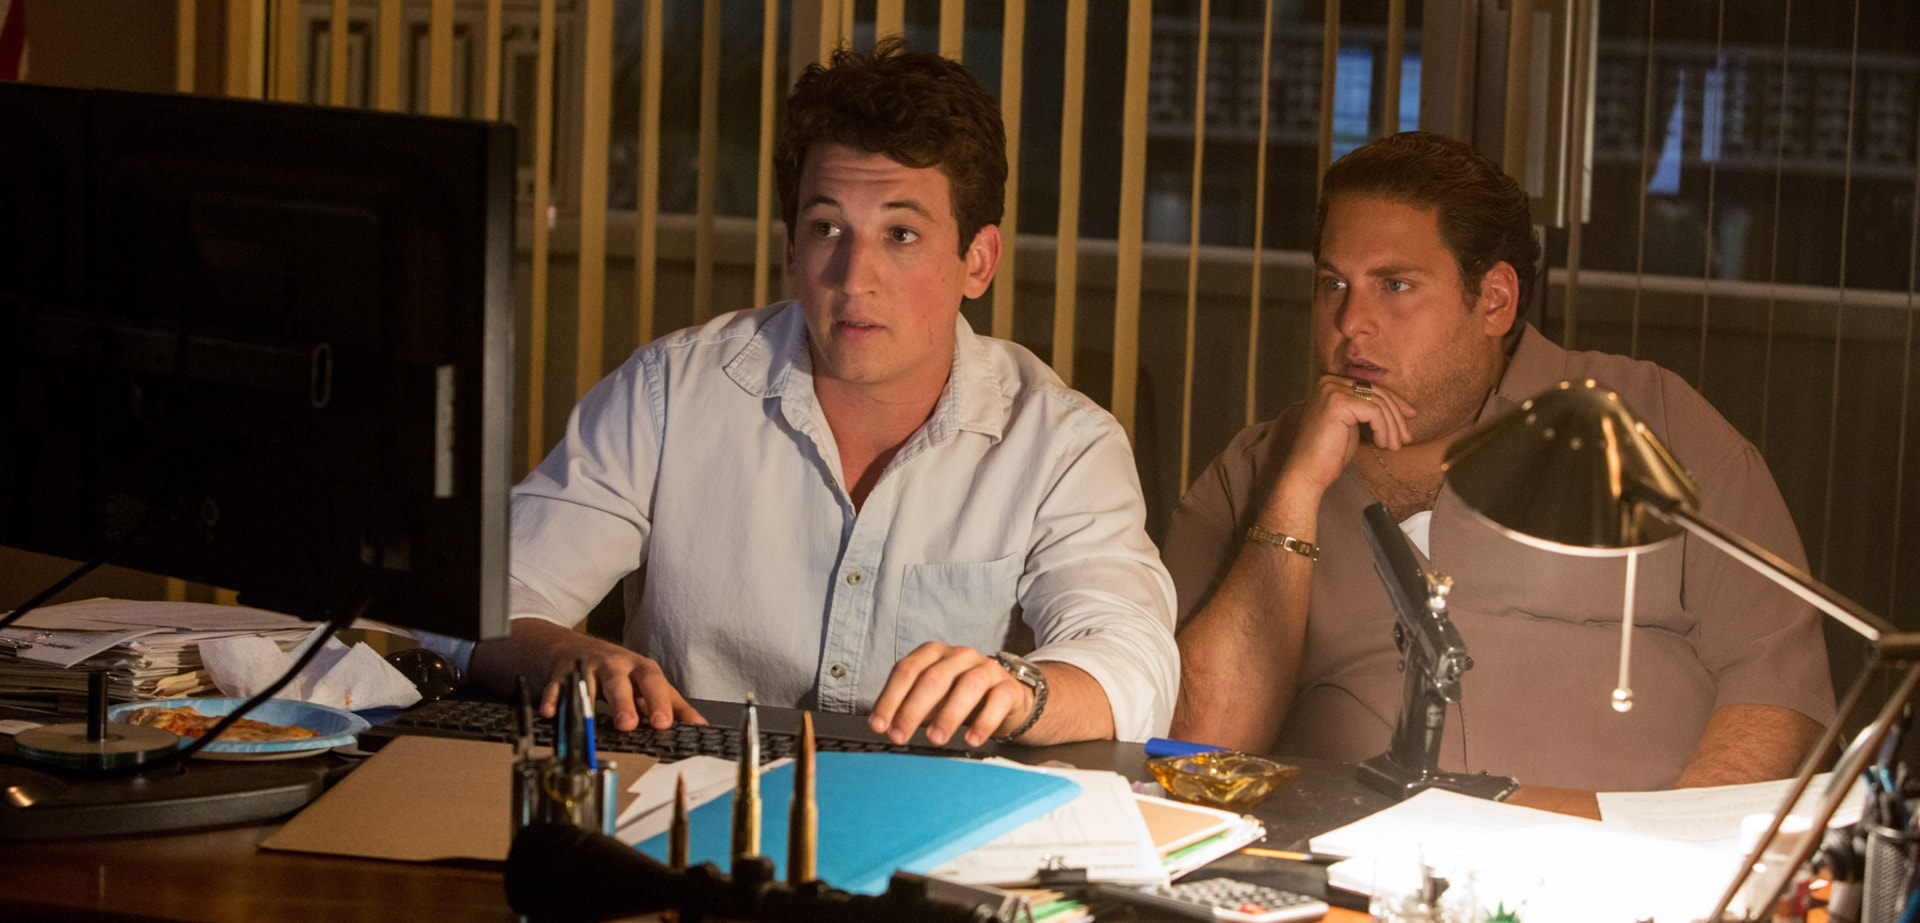 """MILES TELLER as David and JONAH HILL as Efraim in Warner Bros. Pictures' comedic drama (based on true events) """"WAR DOGS,"""" a Warner Bros. Pictures release."""